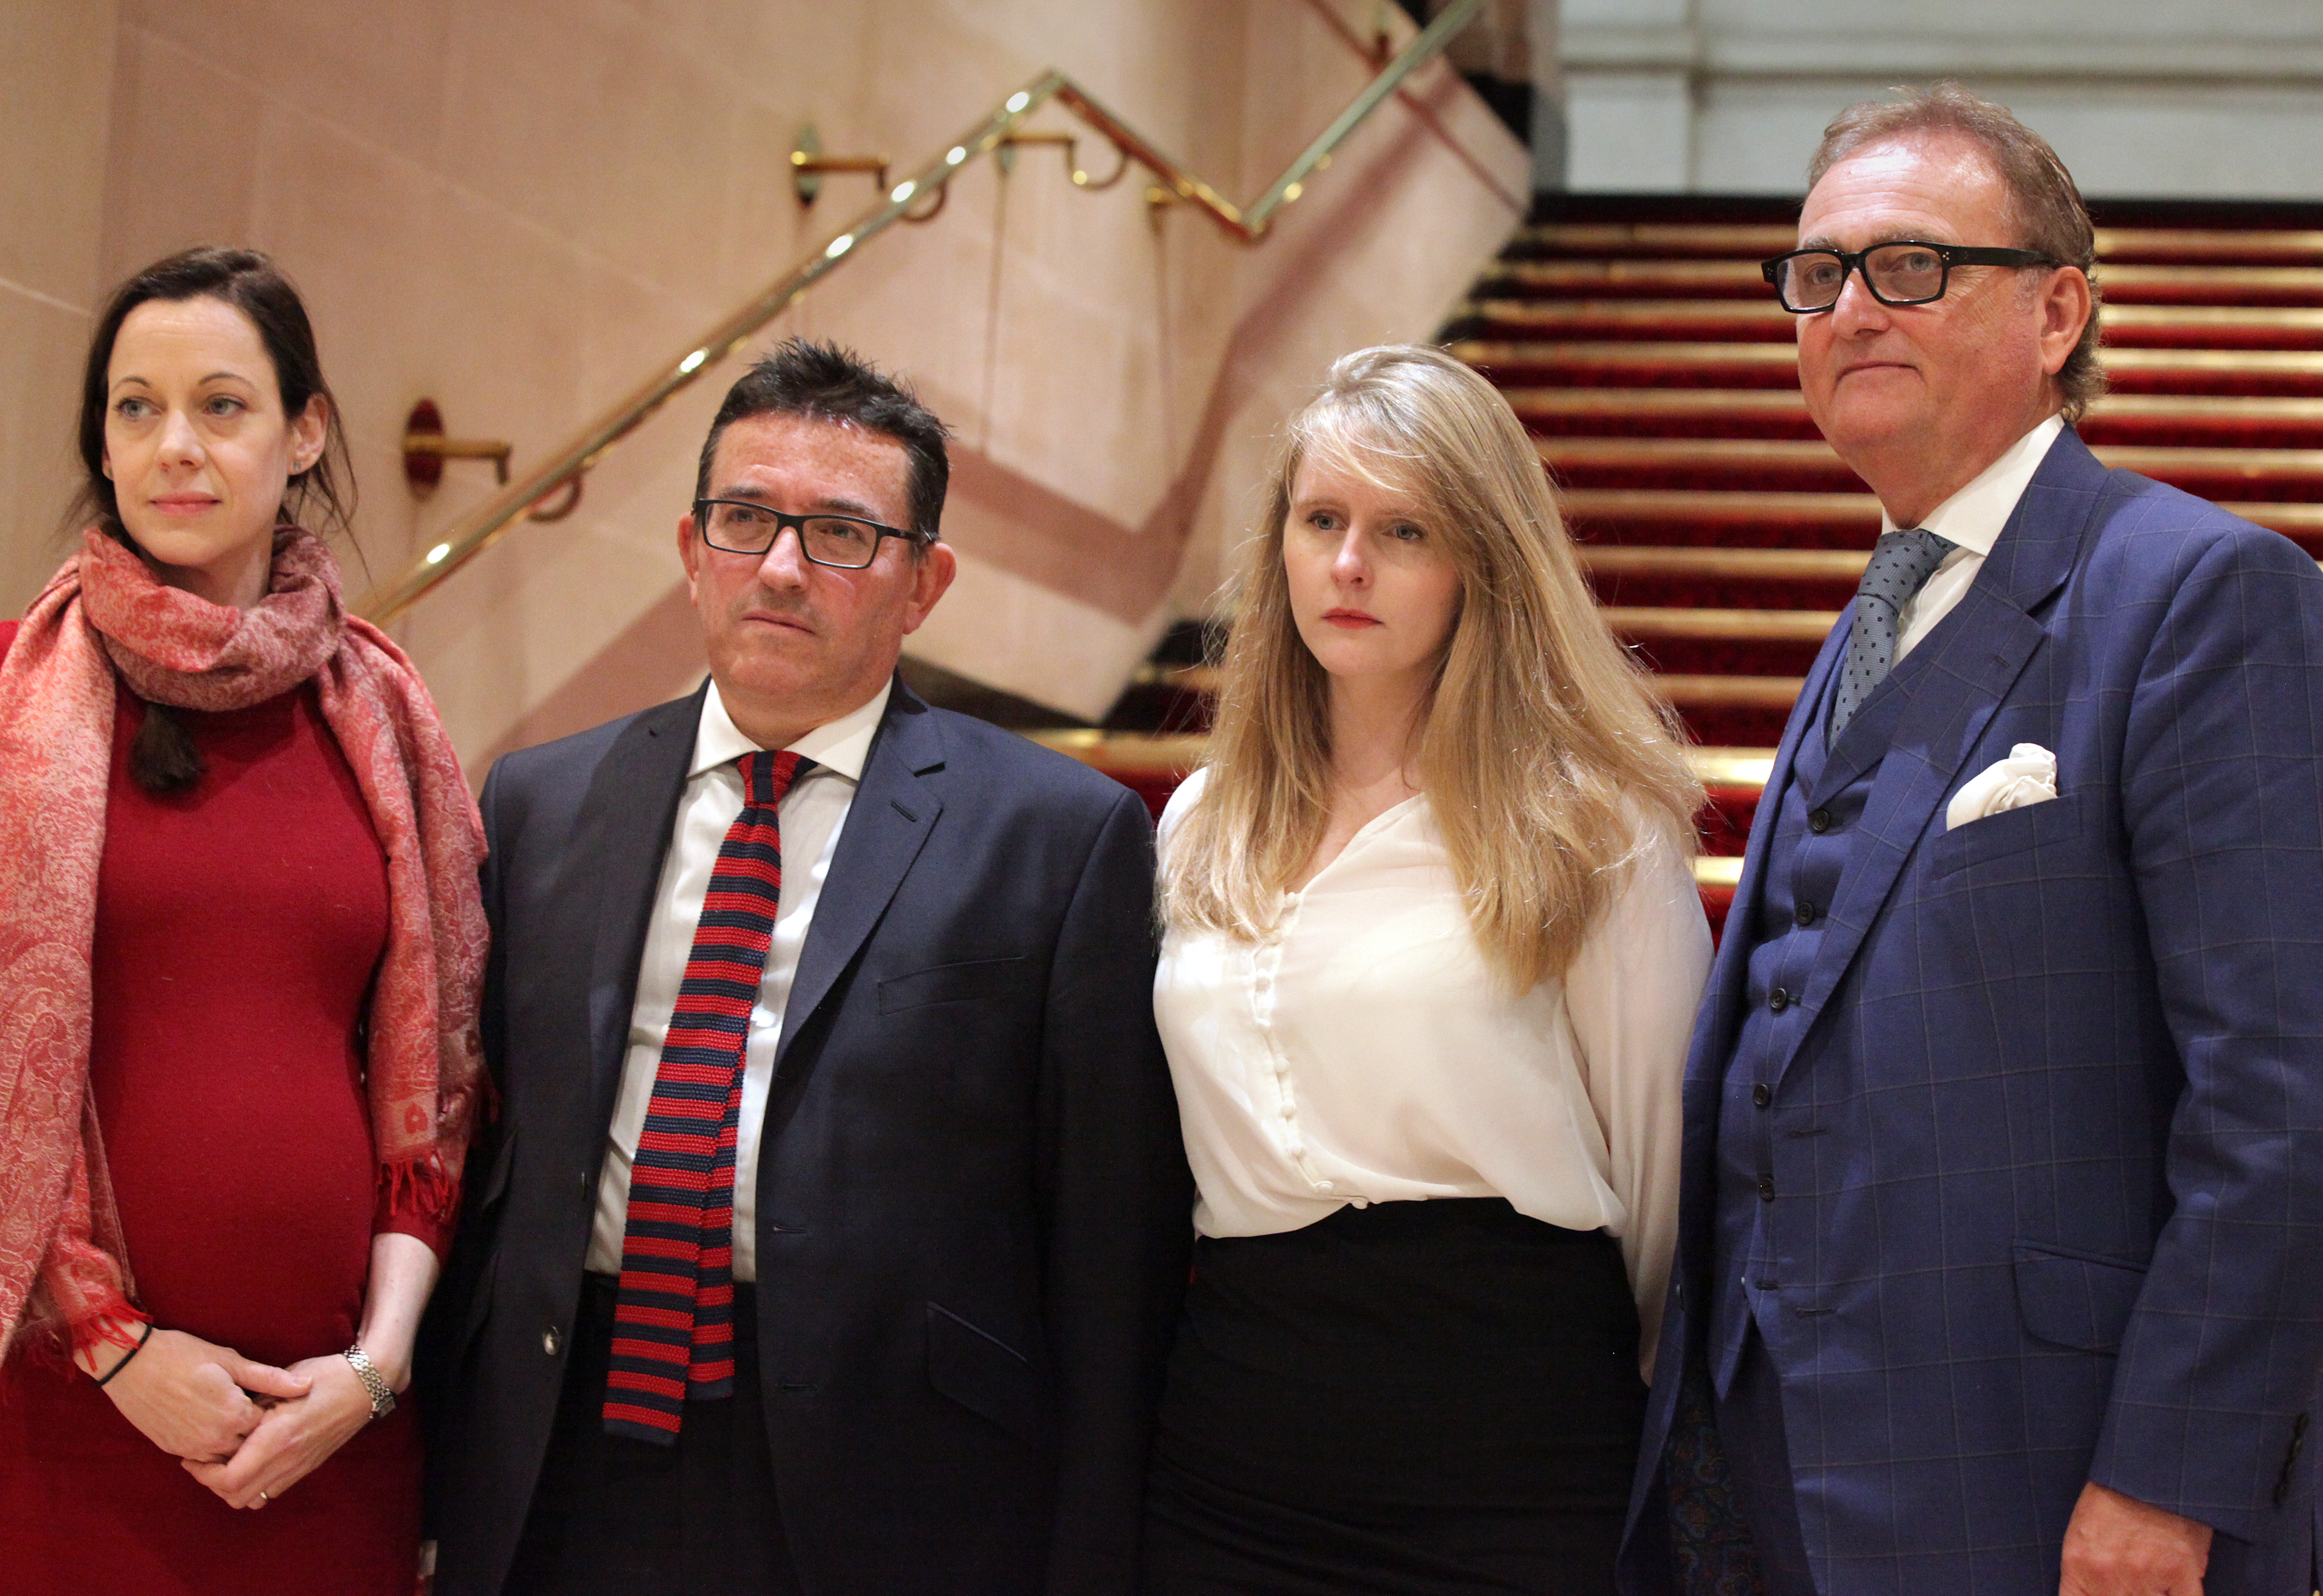 (left to right) Annunziata Rees-Mogg, Lance Anisfeld, Lucy Harris and John Longworth at a press conference in London, they have resigned the whip to back the Conservative Party in the upcoming General Election.